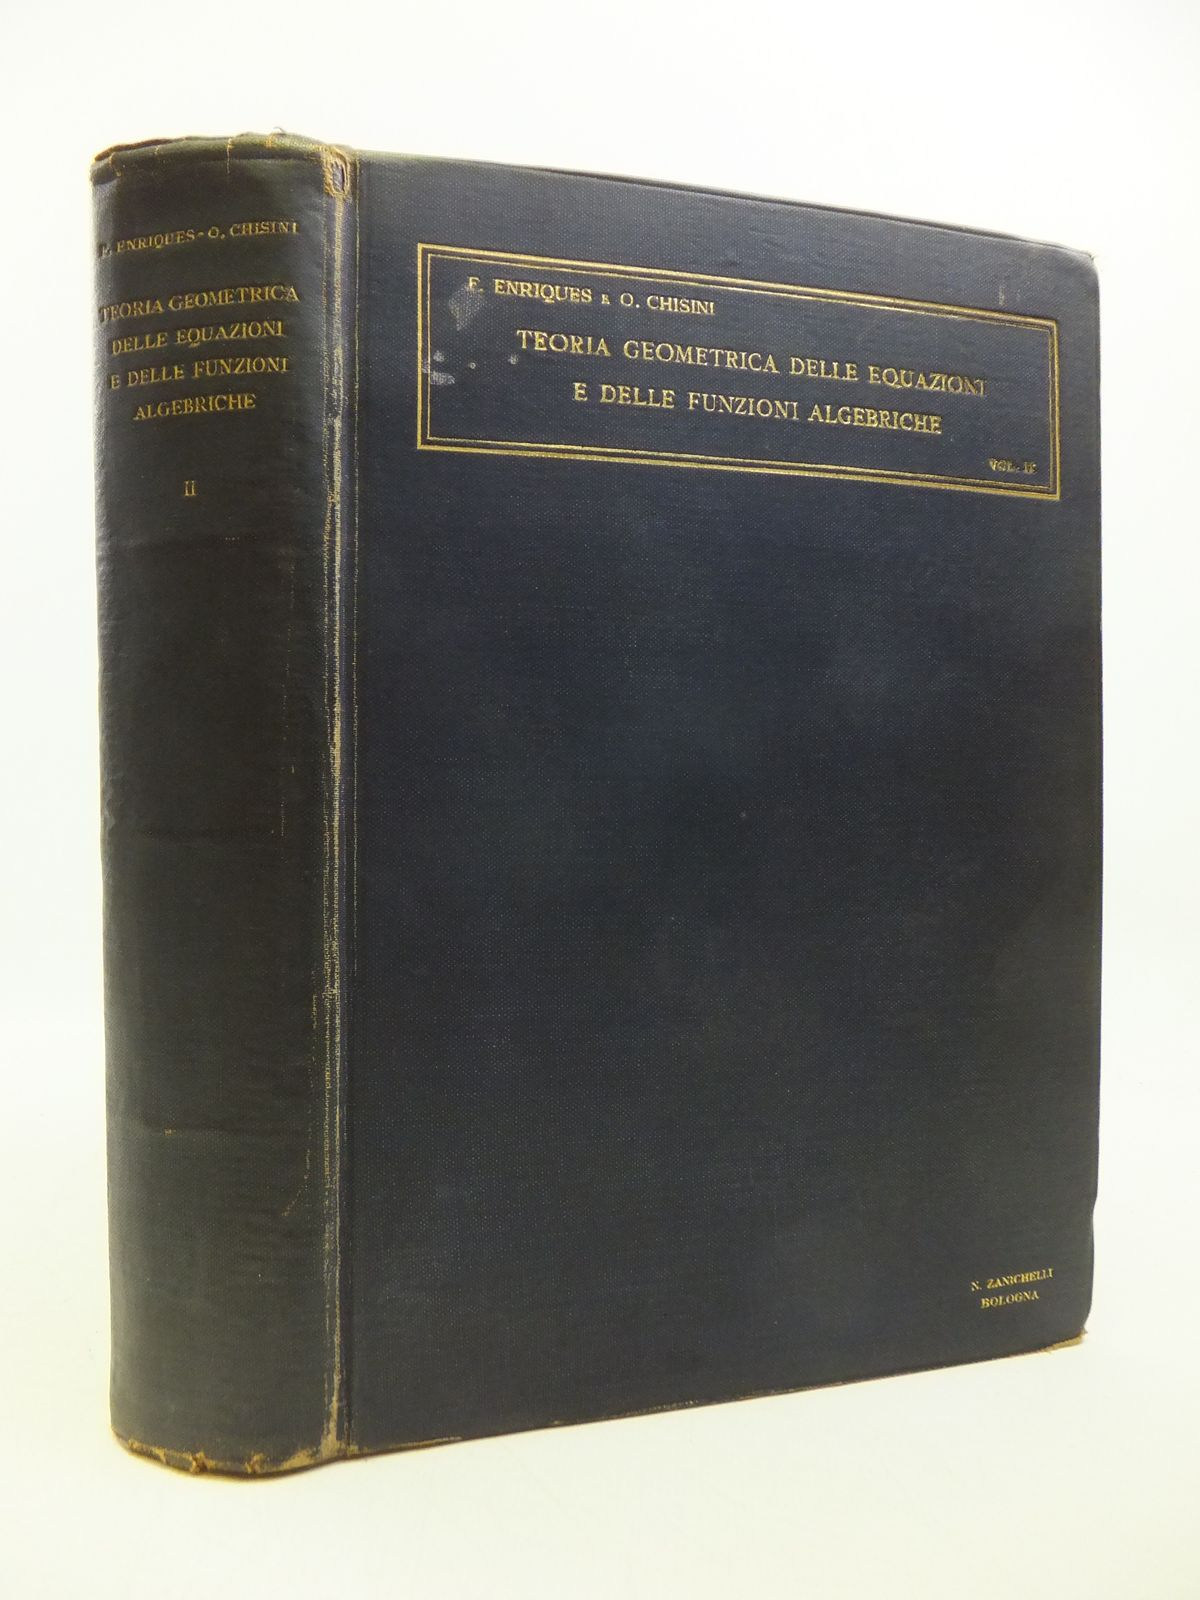 Photo of LEZIONI SULLA TEORIA GEOMETRICA DELLE EQUAZIONI E DELLE FUNZIONI ALGEBRICHE VOLUME II written by Enriques, Federigo<br />Chisini, O. published by Nicola Zanichelli (STOCK CODE: 1811780)  for sale by Stella & Rose's Books